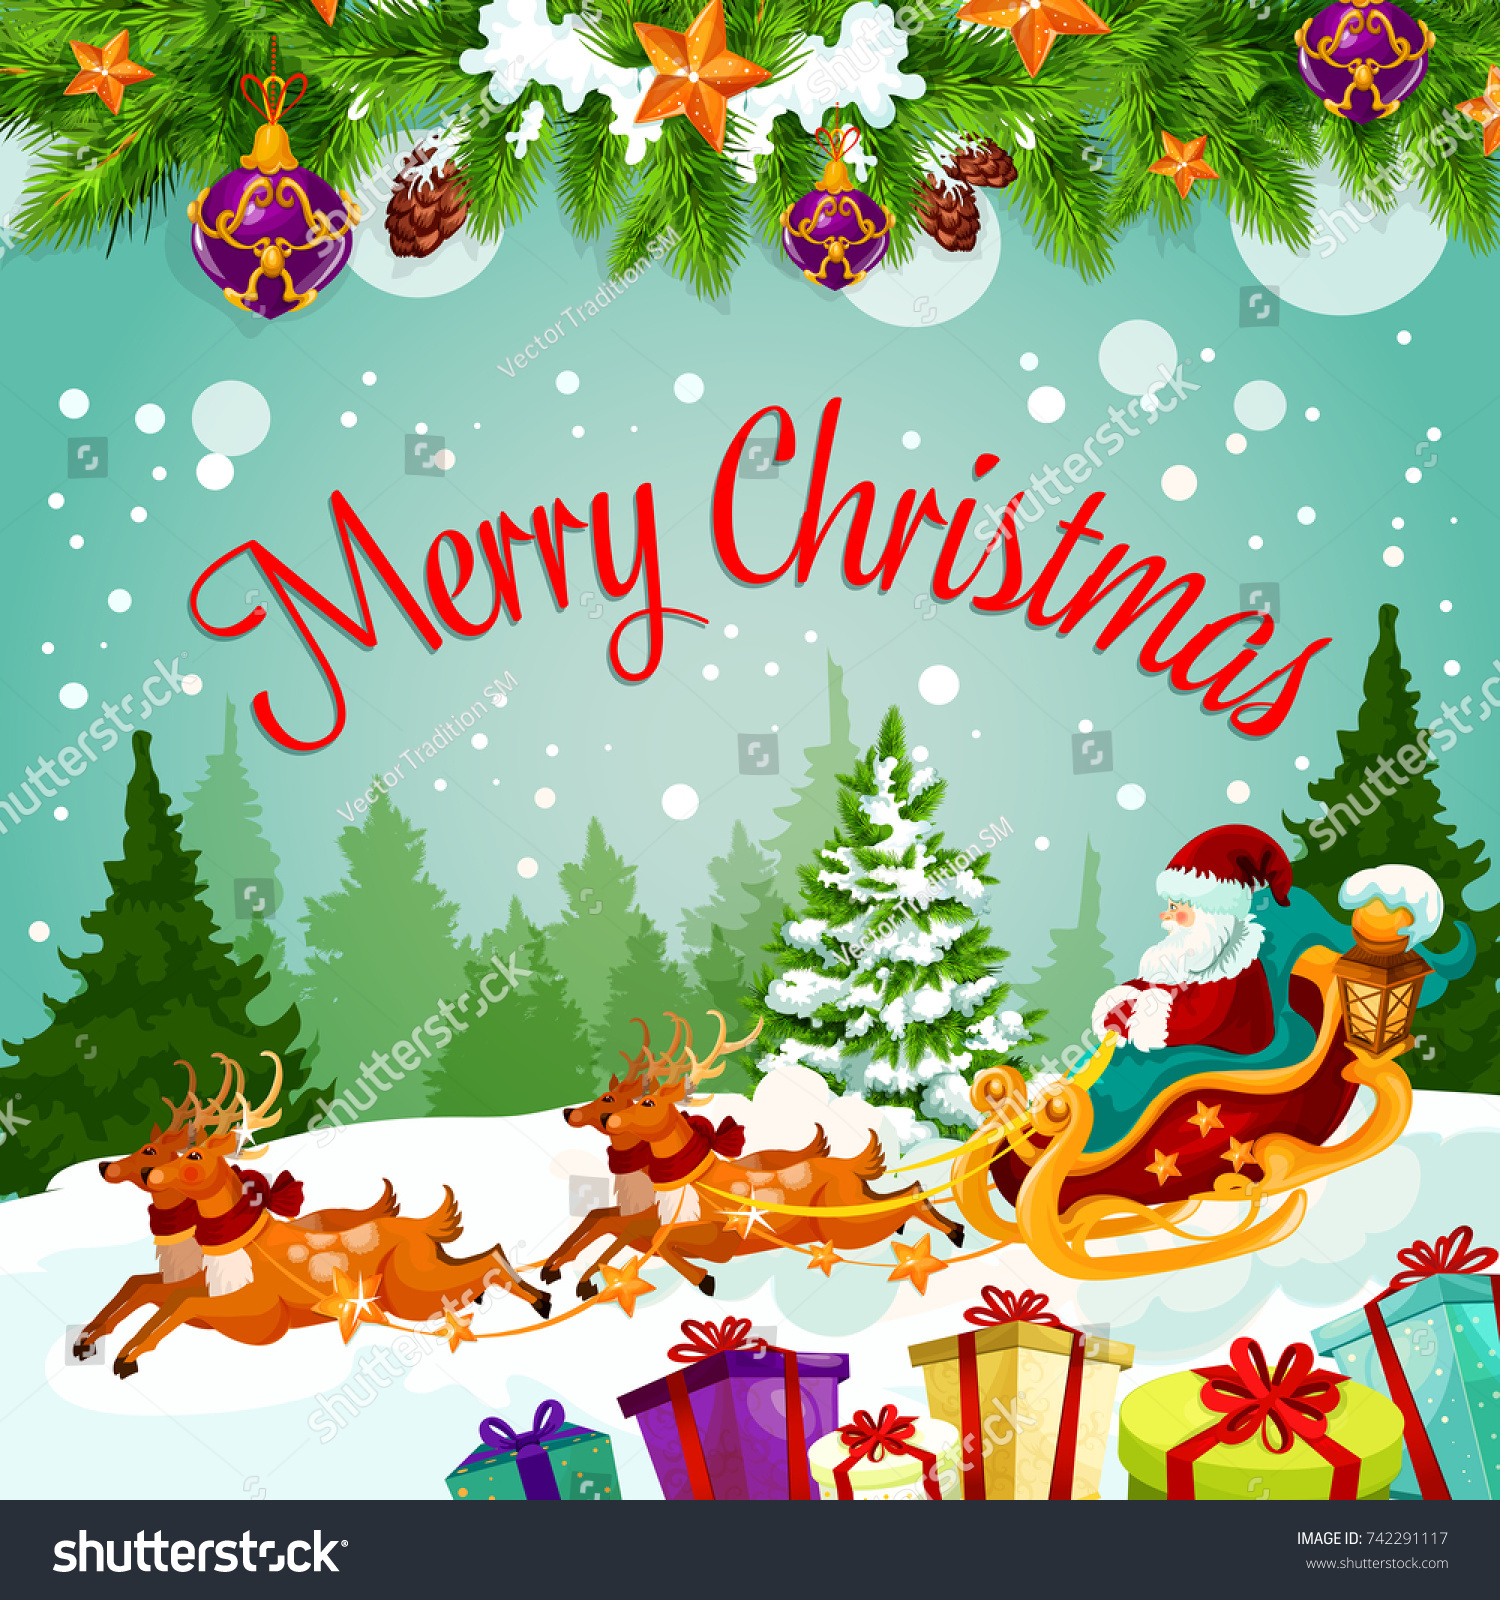 Merry christmas greeting card santa on stock vector 2018 742291117 merry christmas greeting card of santa on reindeer sleigh with gifts bag vector christmas tree m4hsunfo Gallery